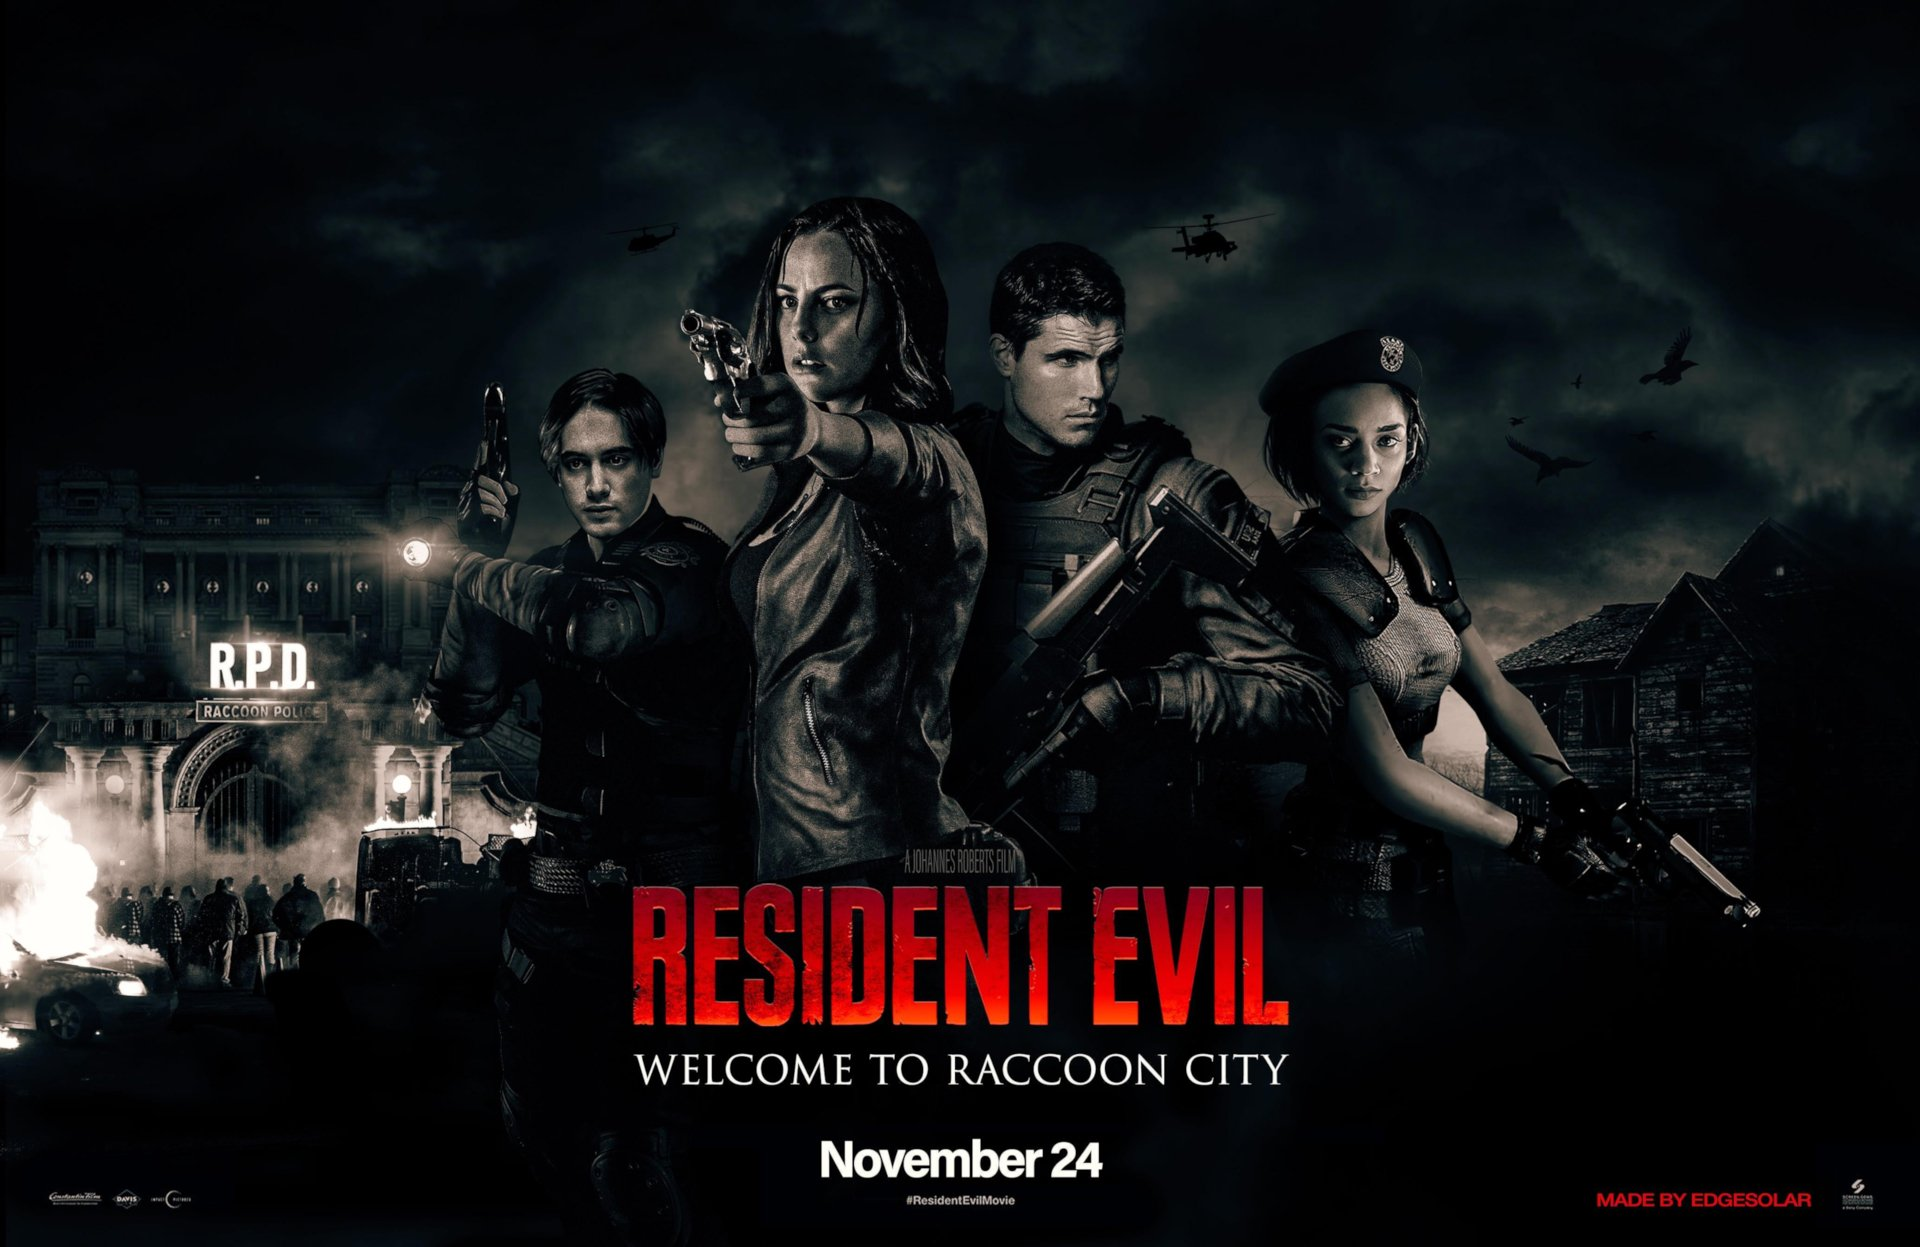 Resident Evil: Welcome To Raccoon City is going to be extremely scary